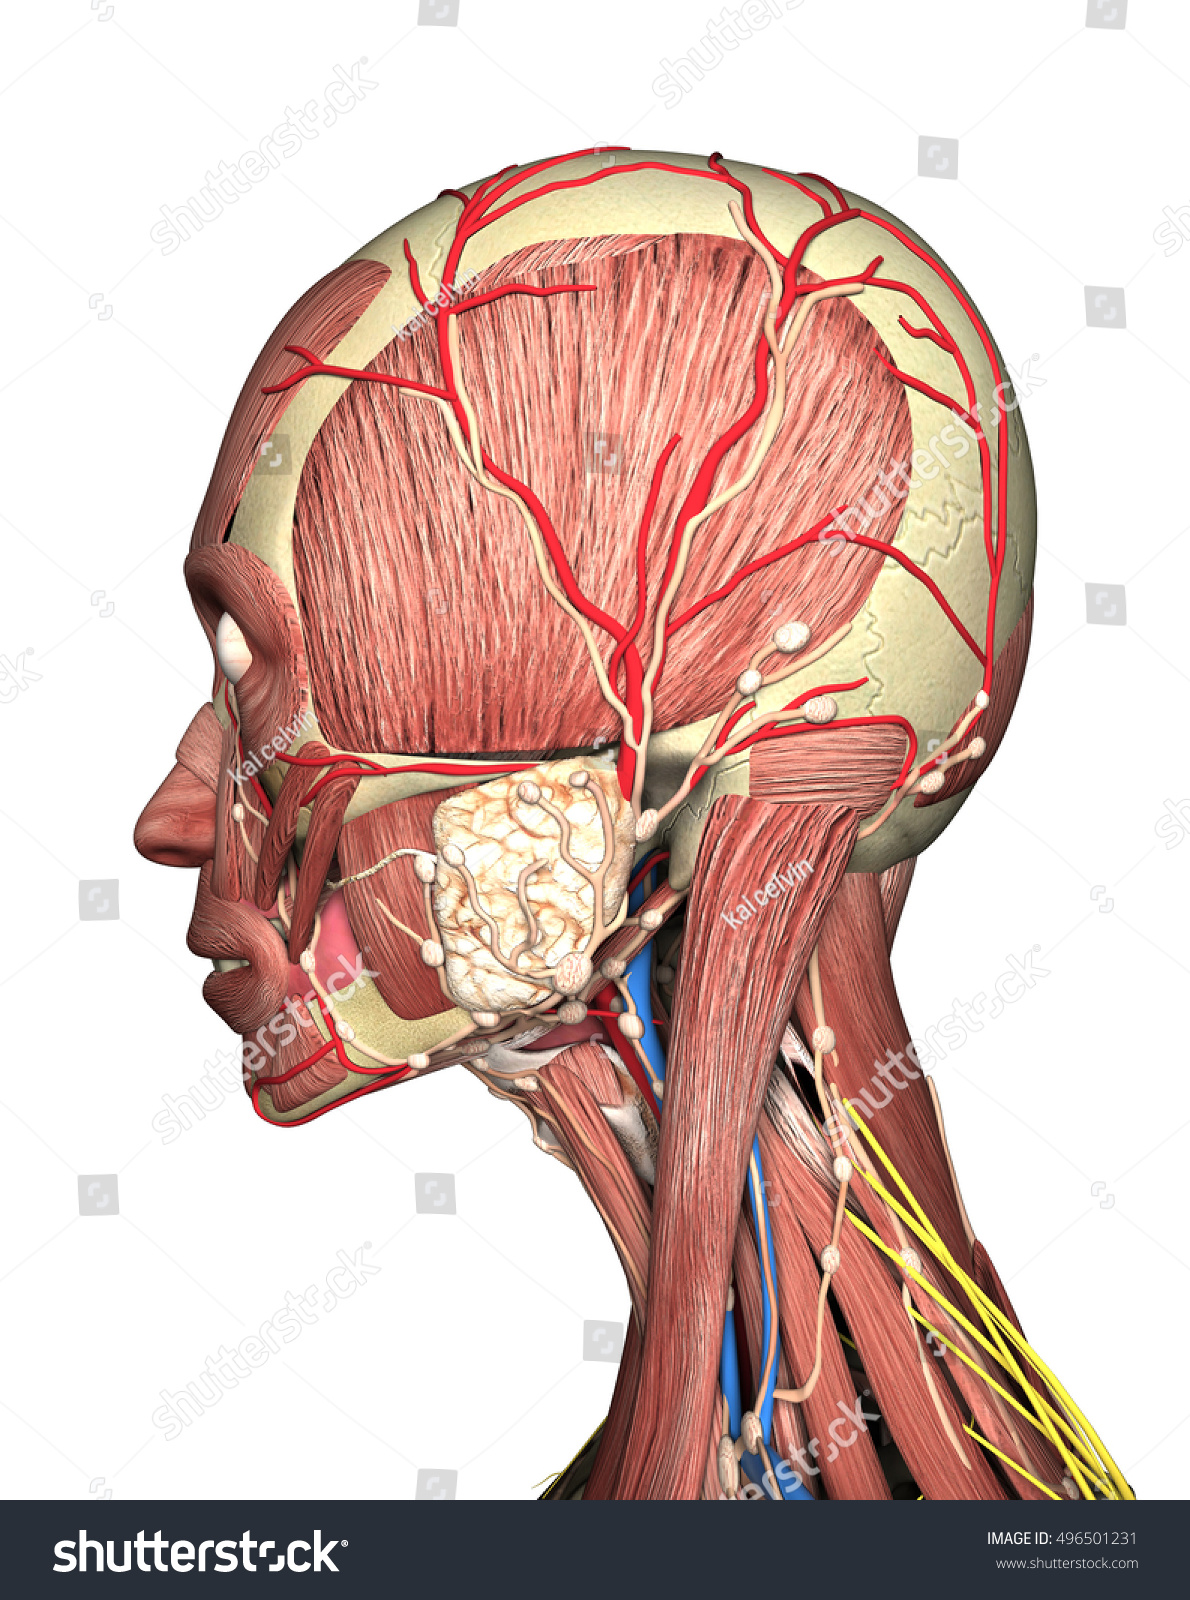 Anatomy Head Side View 3 D Rendering Stock Illustration 496501231